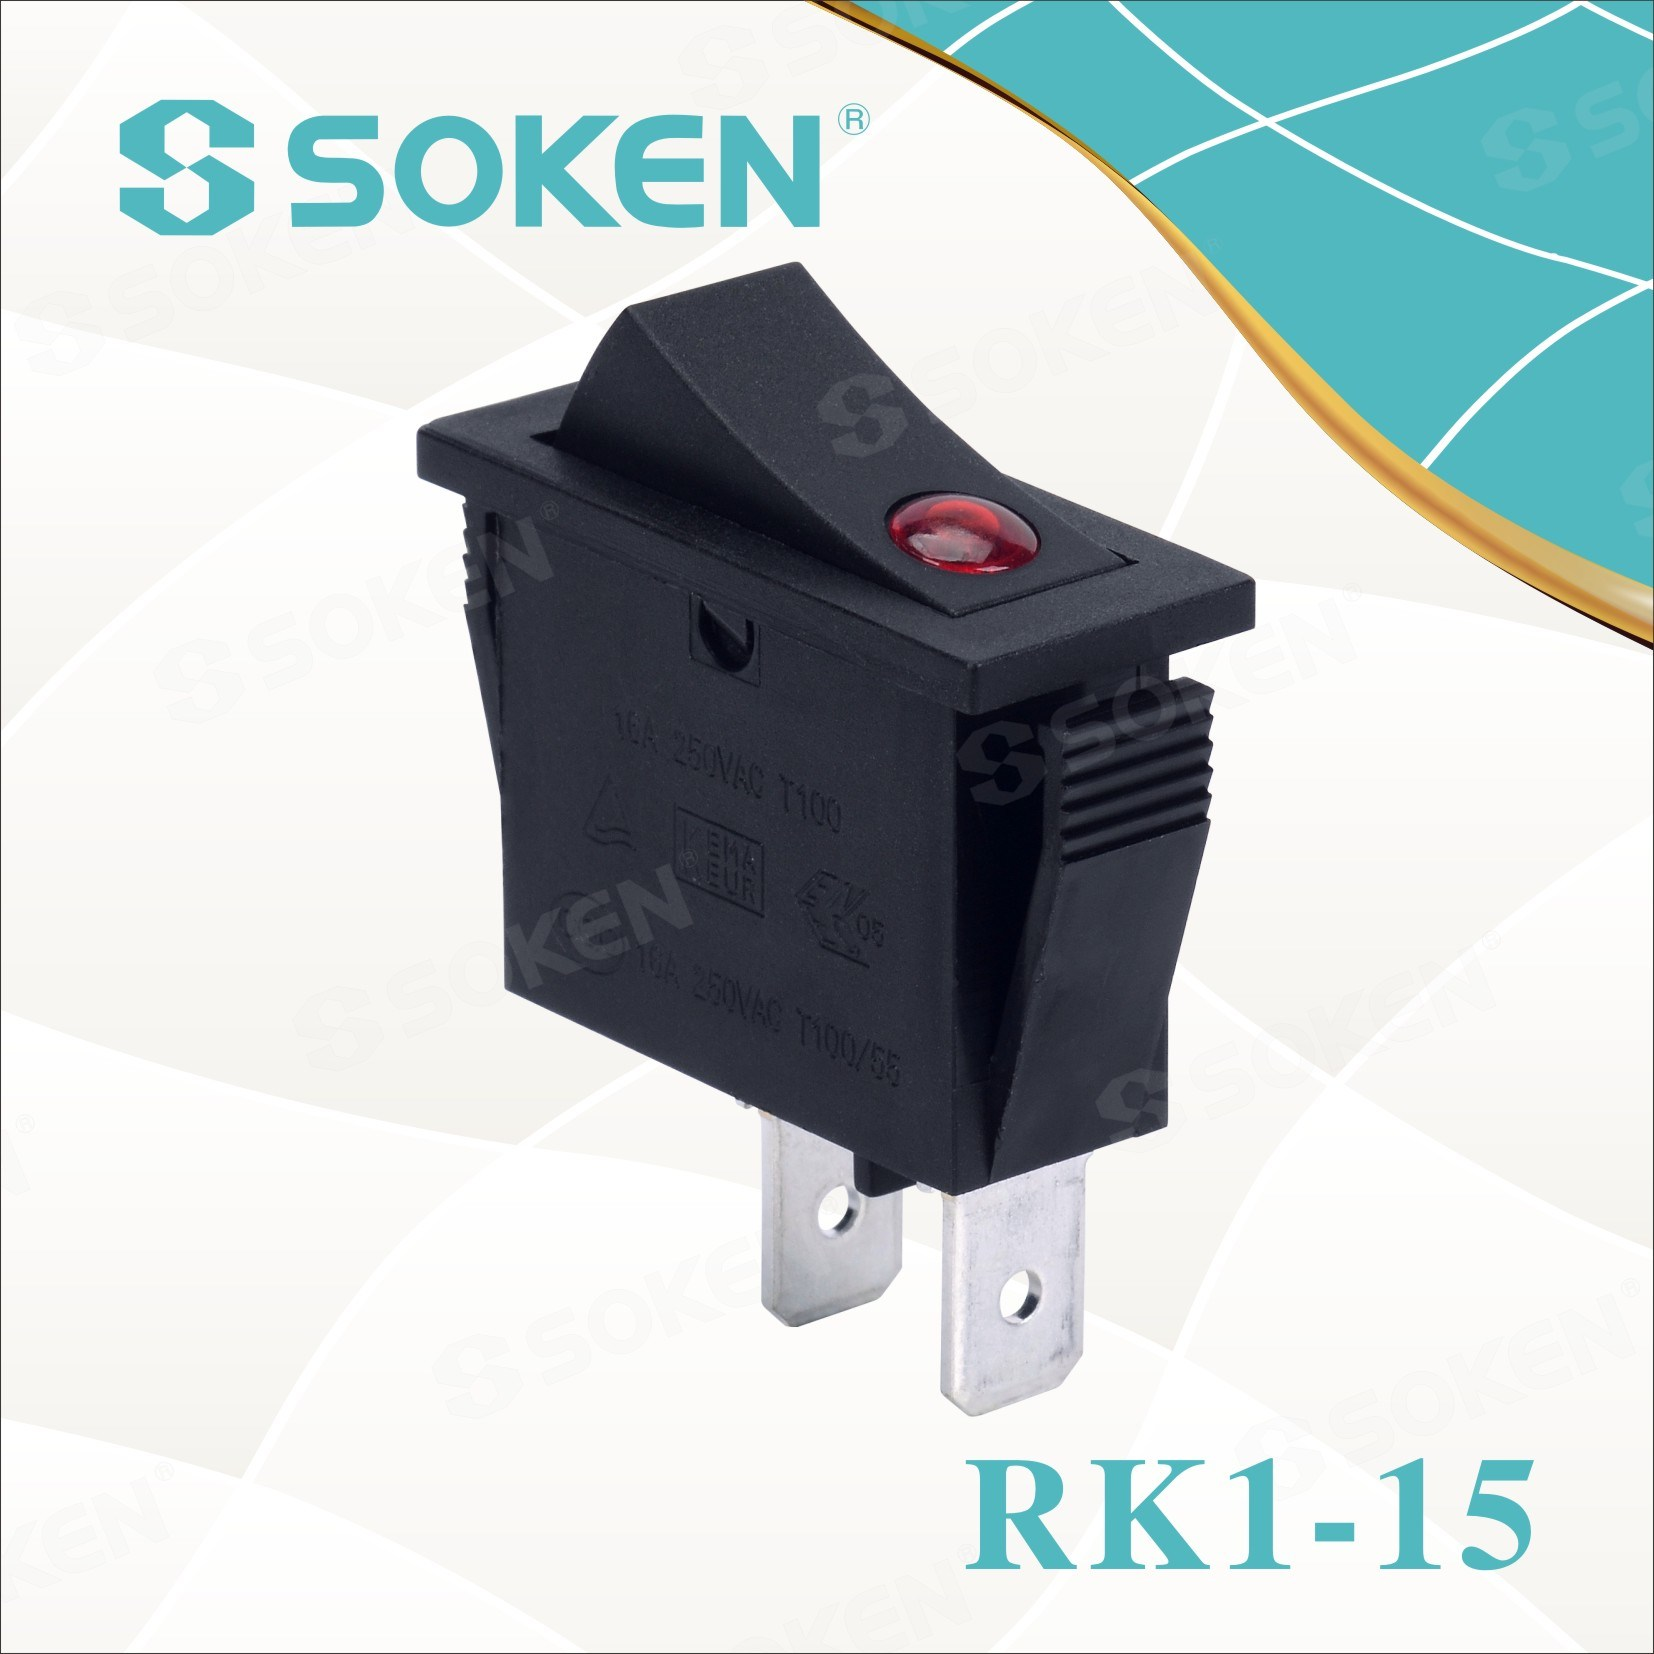 Soken Rk1-15 1x1 B / B fuq Rocker barra Switch